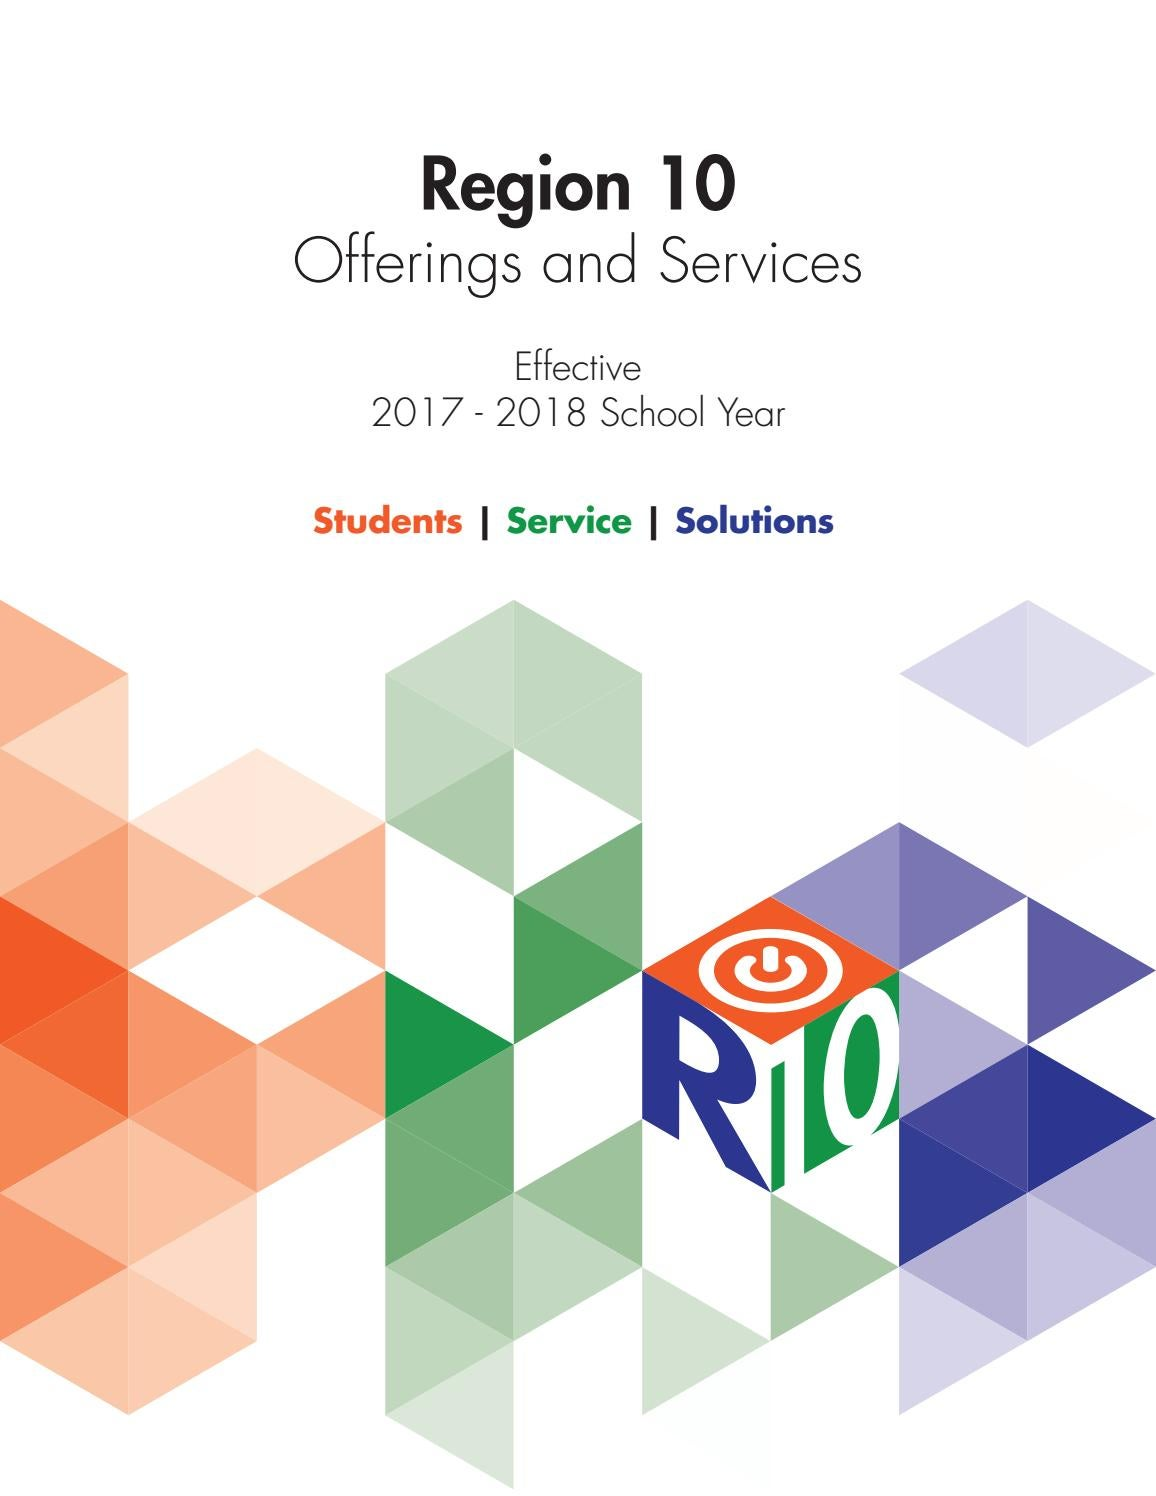 R10 2017-2018 Offerings and Services Catalog